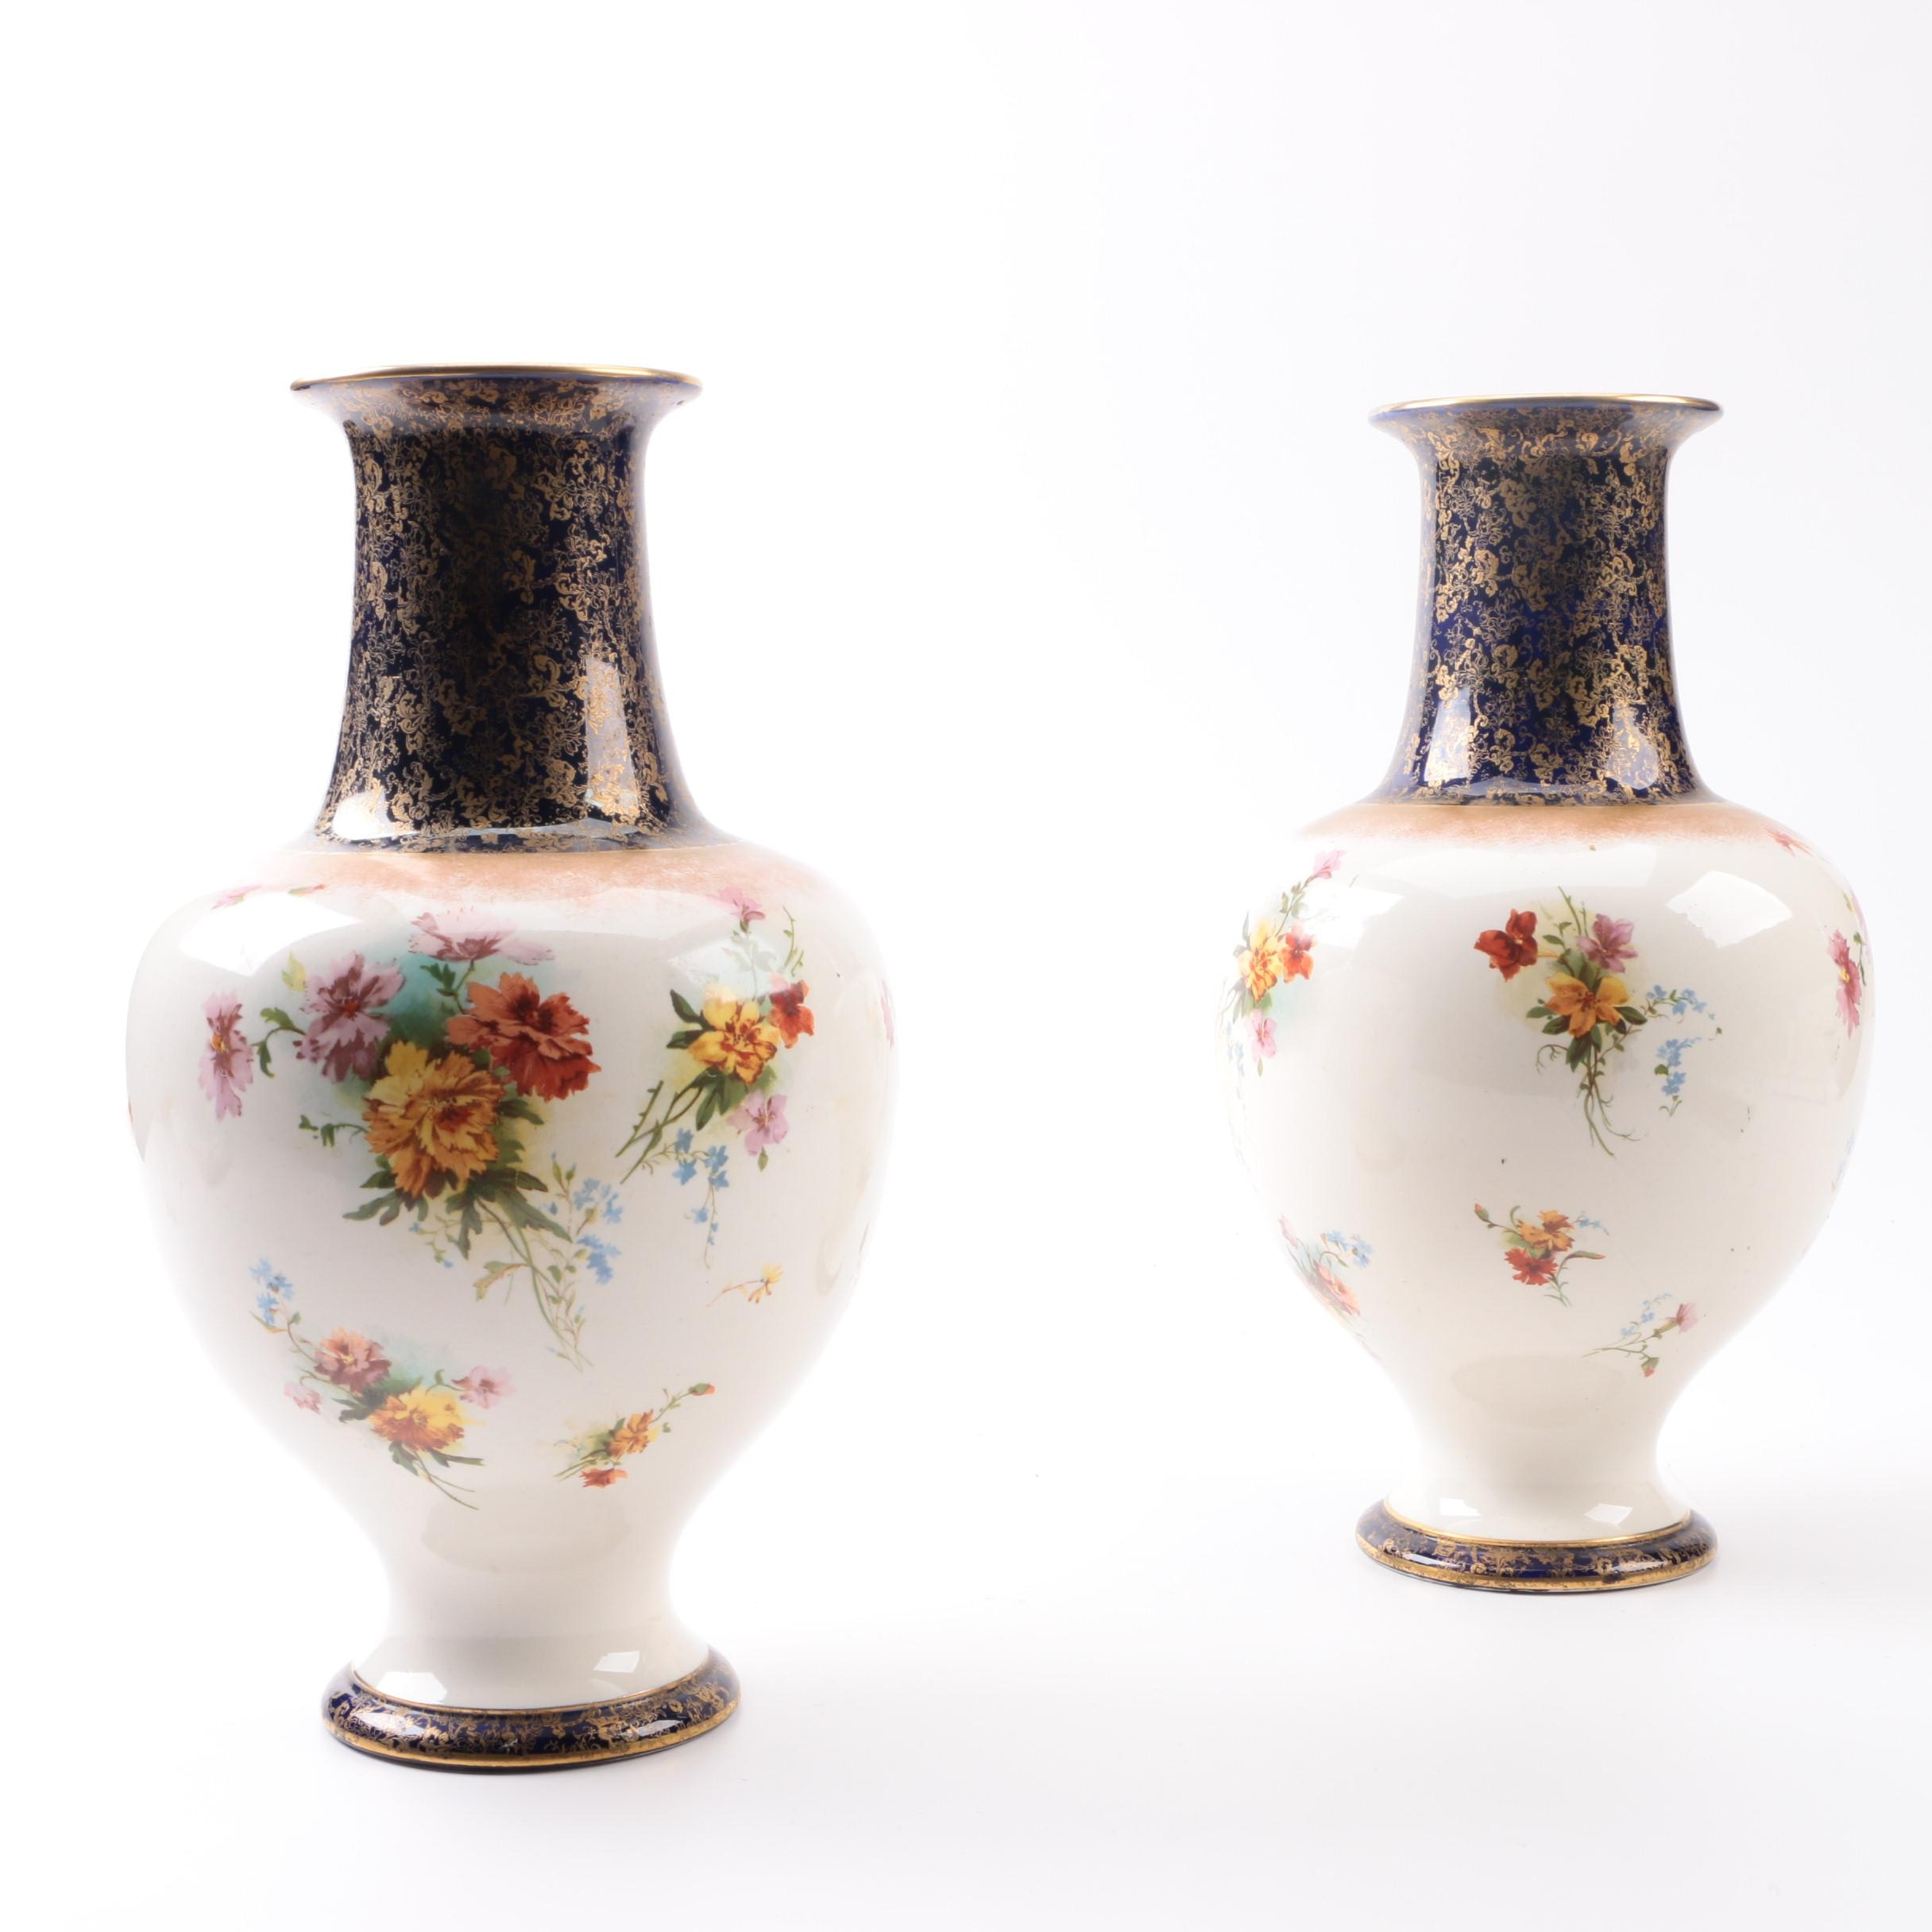 Antique Doulton Burslem Vases